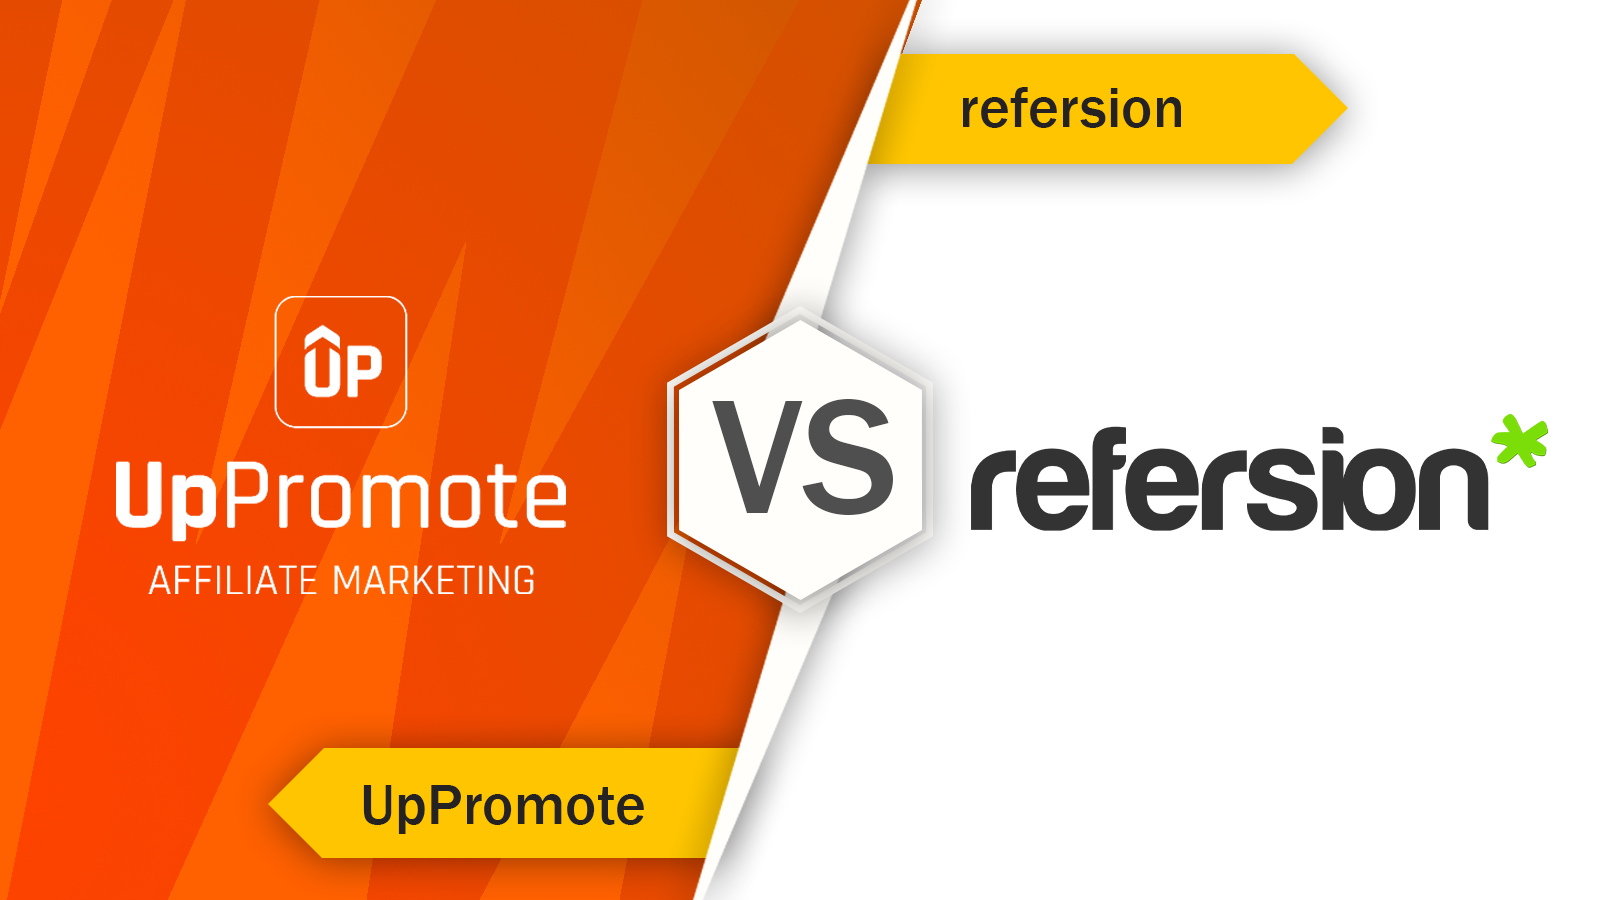 UpPromote: An affordable and powerful alternative to Refersion